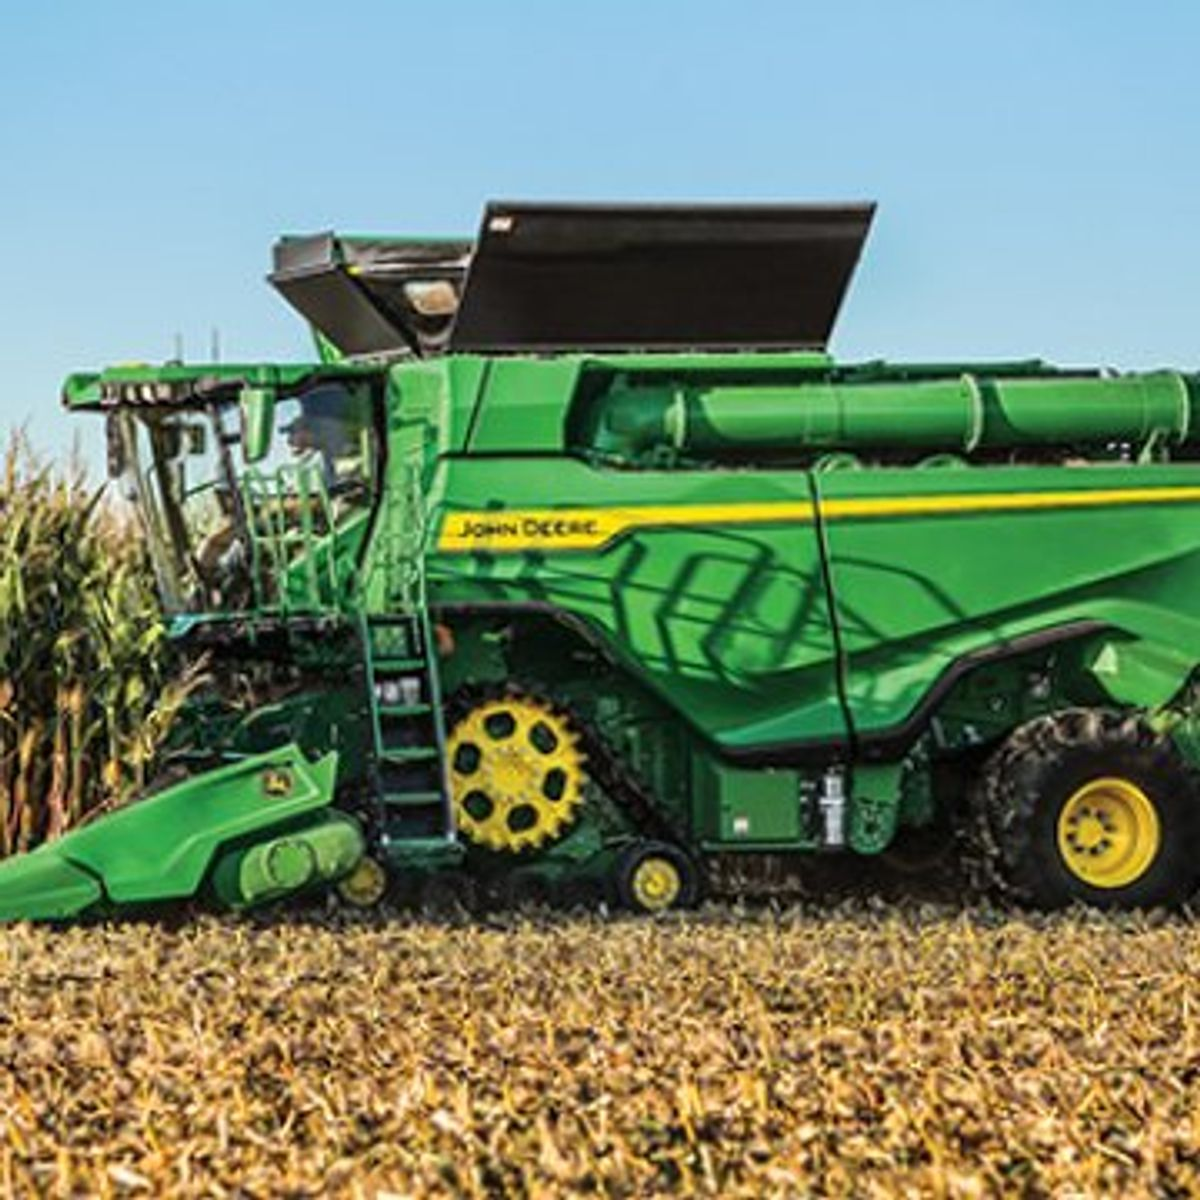 John Deere Add Two New Models To Its X Series Combine Line Up